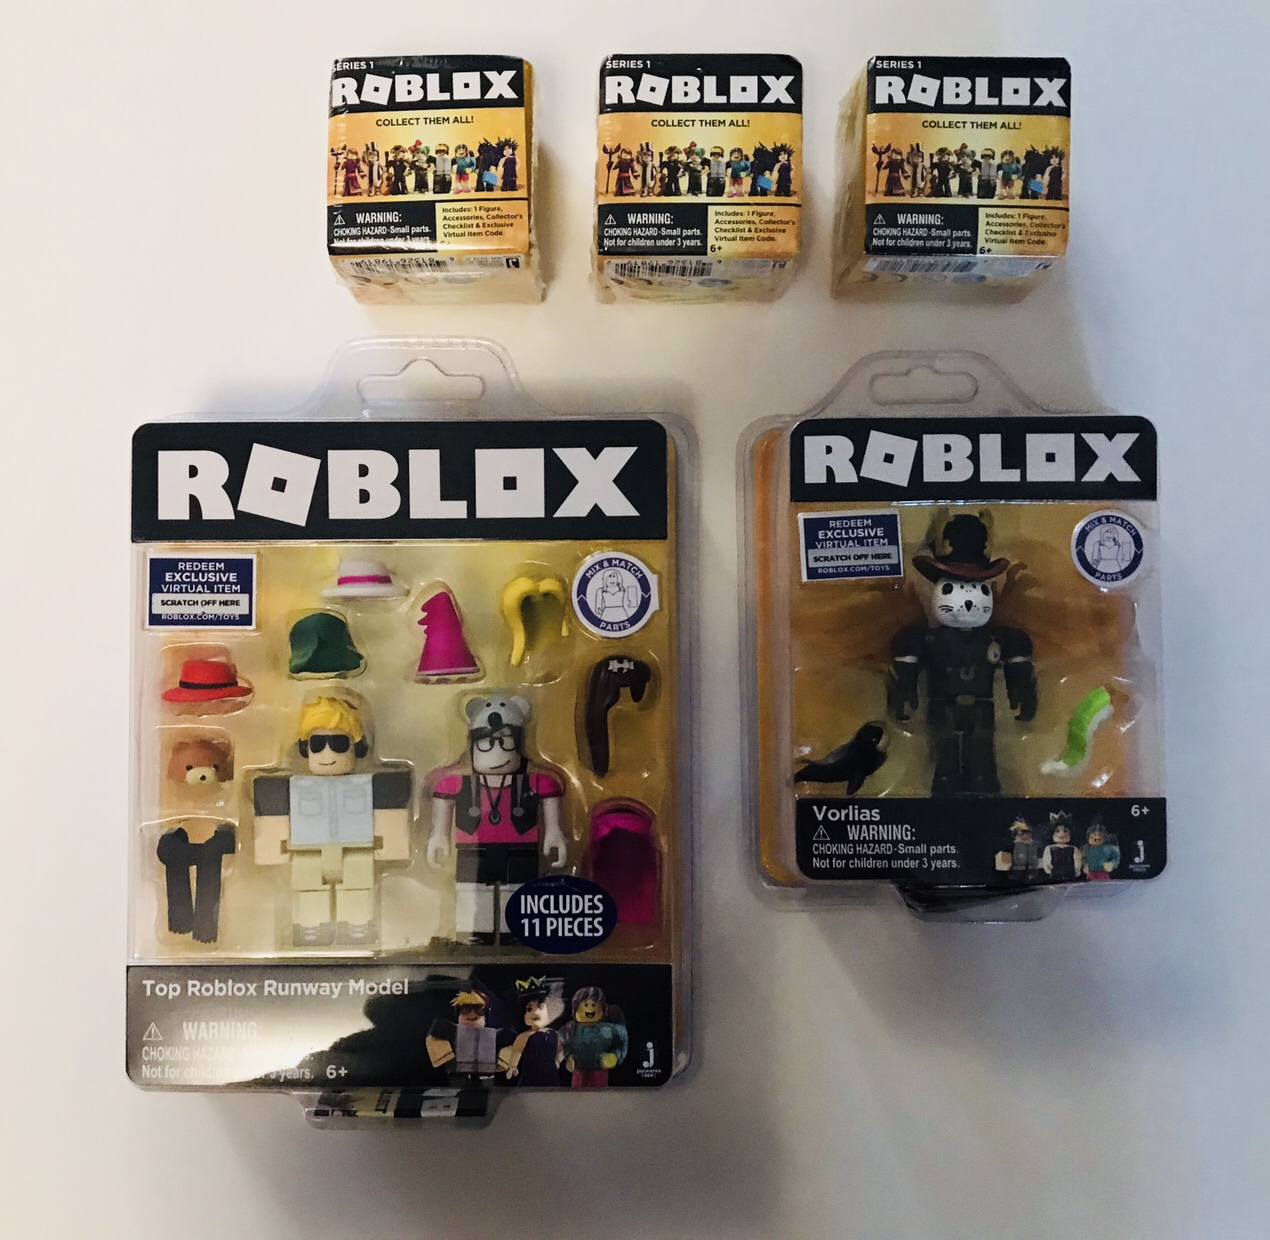 Reviewing The Roblox Celebrity Toy Range - RachelSwirl